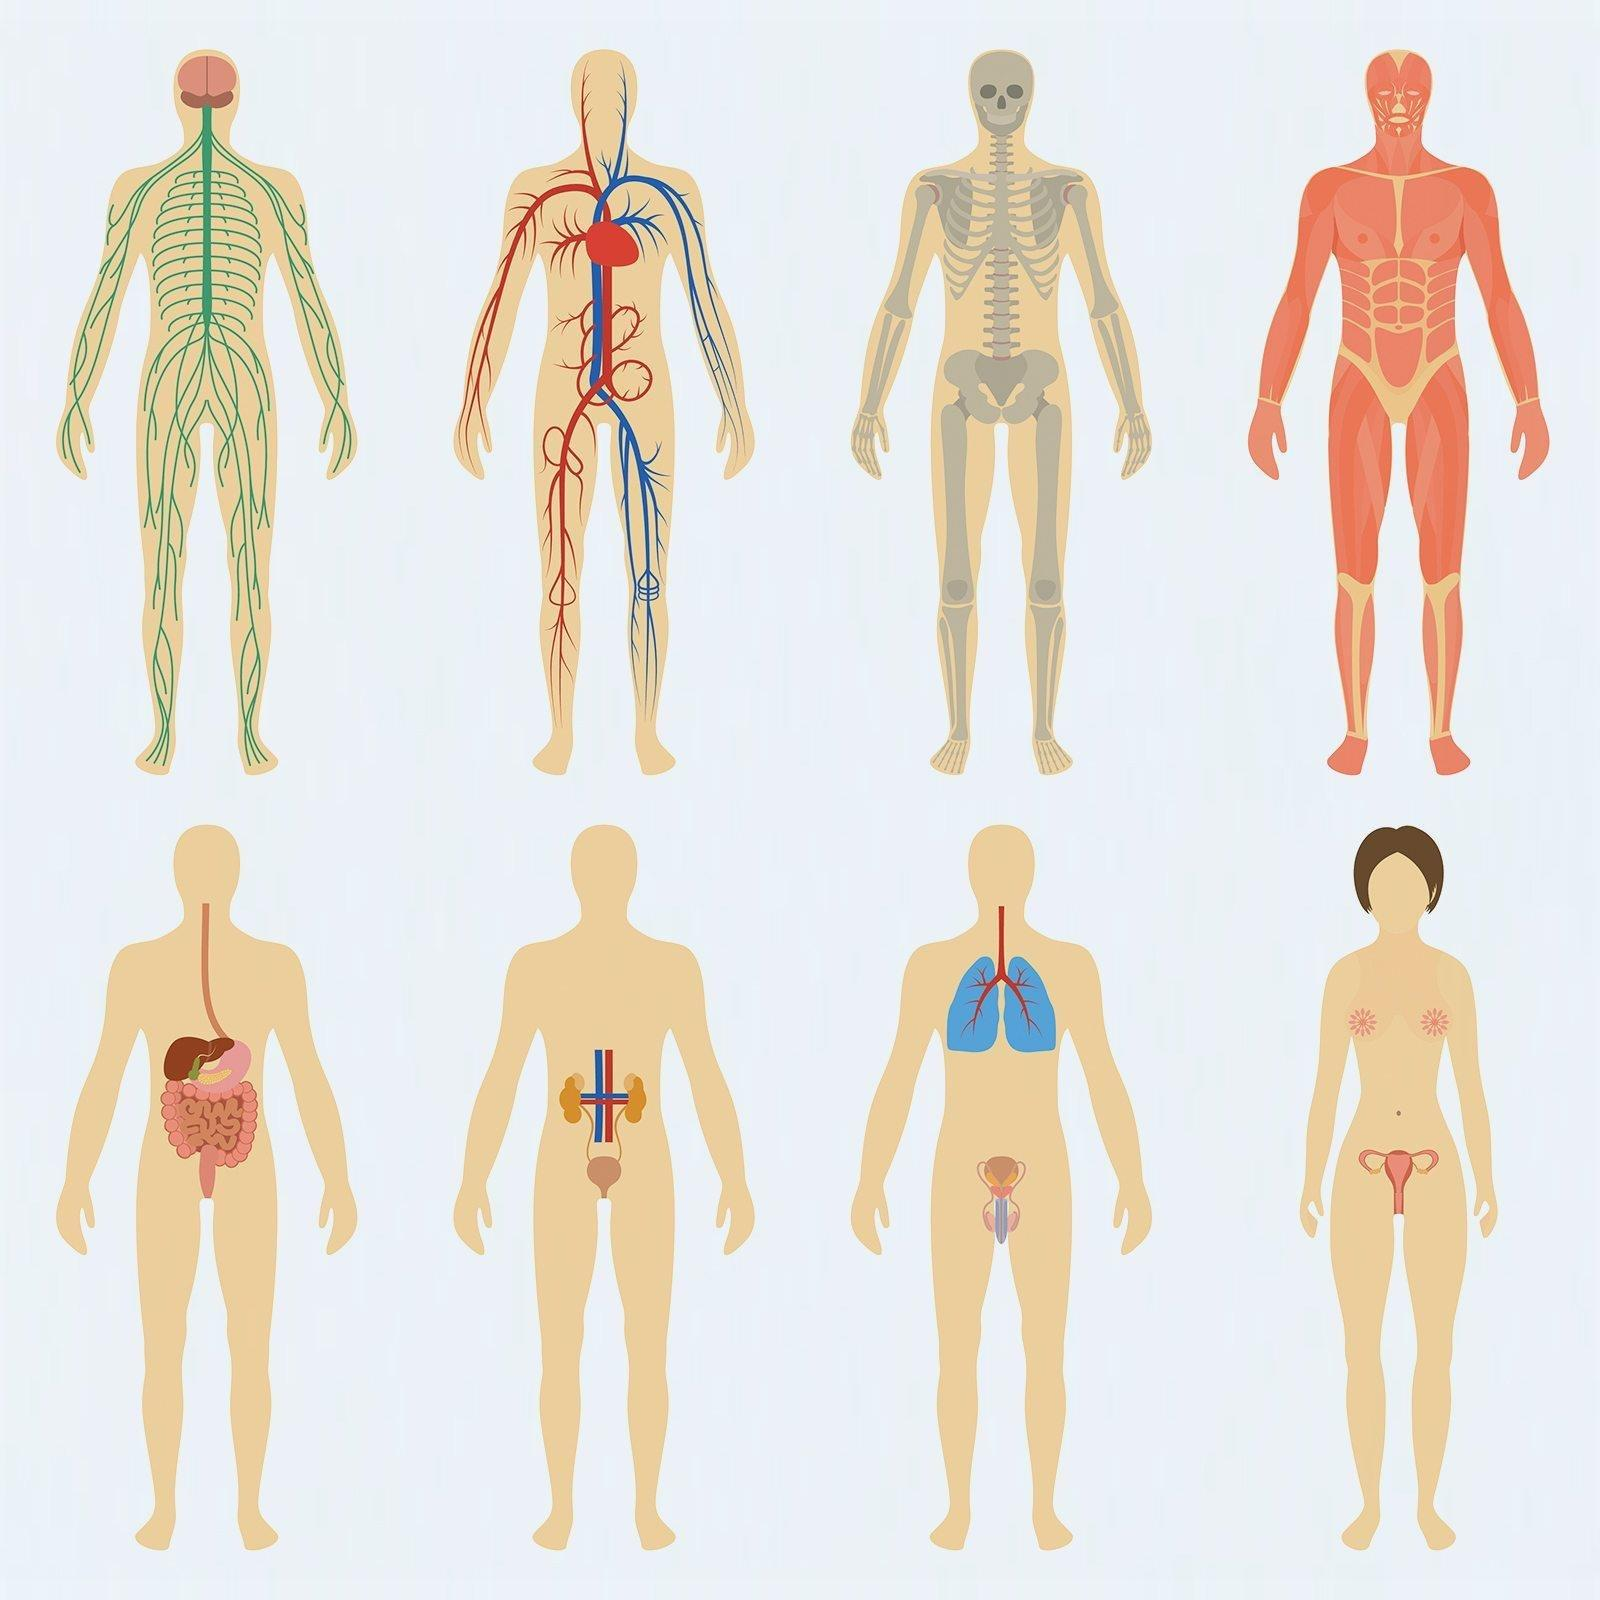 Complications Of Diabetes – A Disease Affecting All Organs